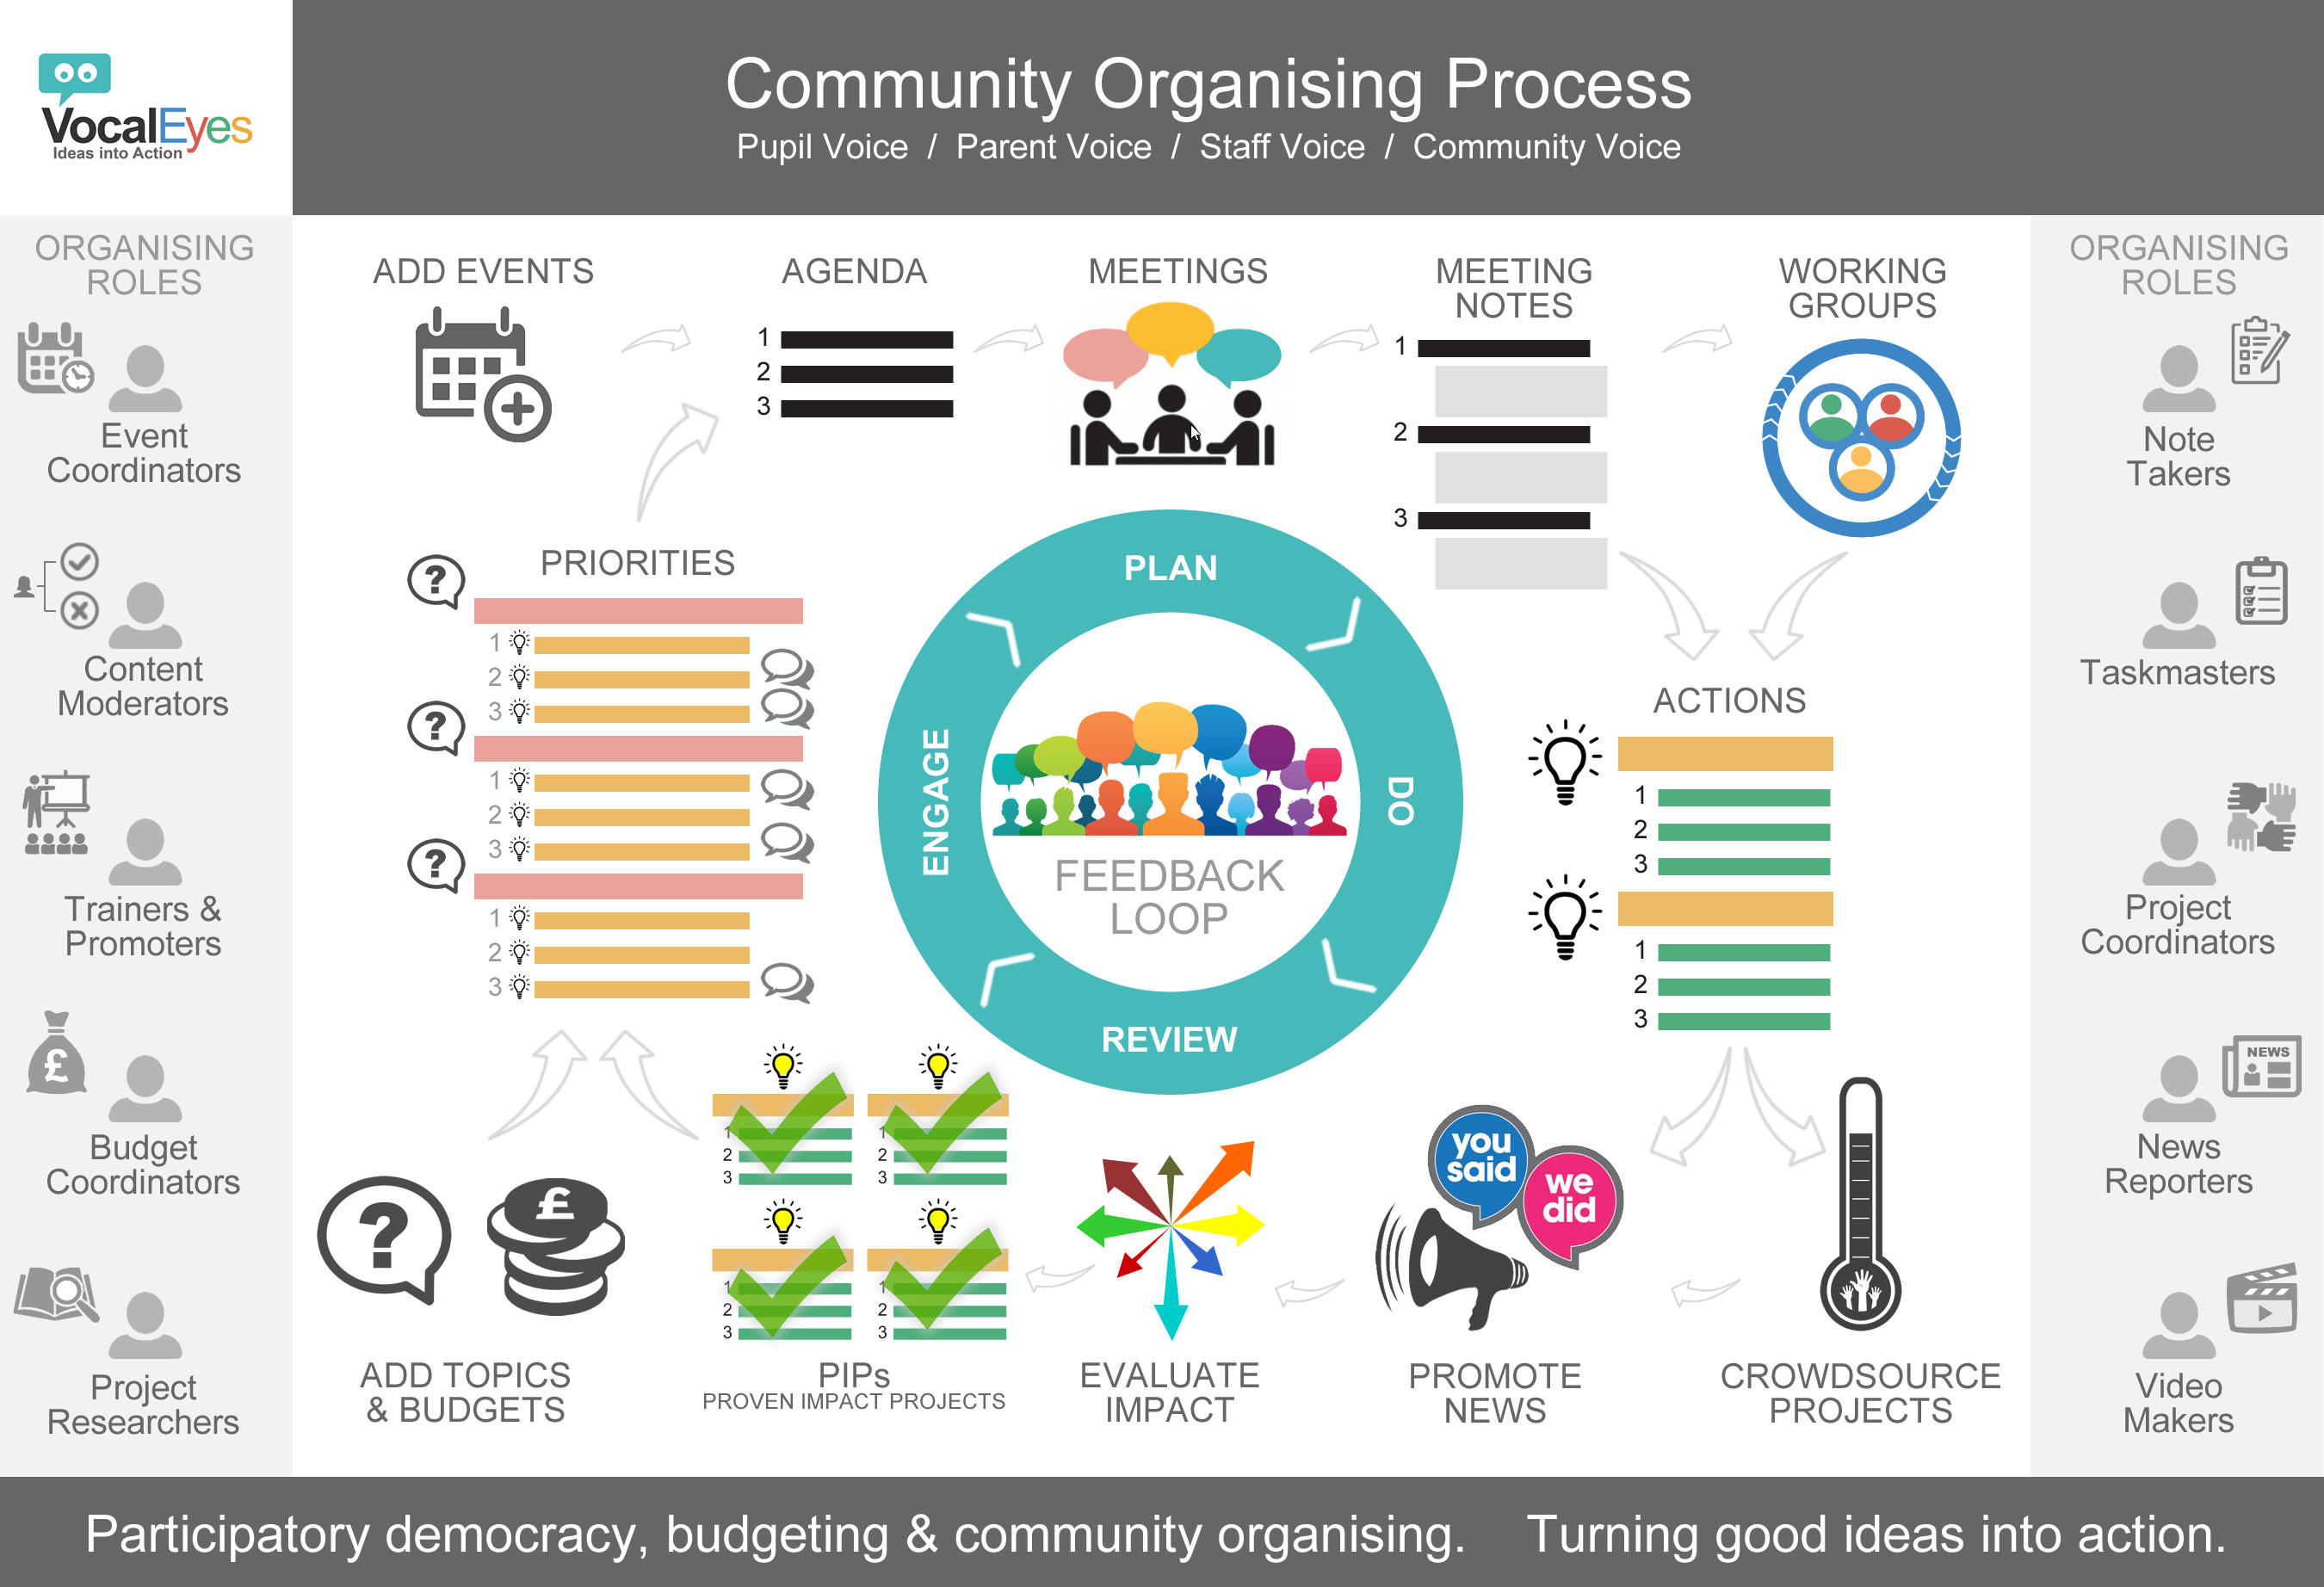 VocalEyes Community Organising Process - participatory democracy, budgeting and project management